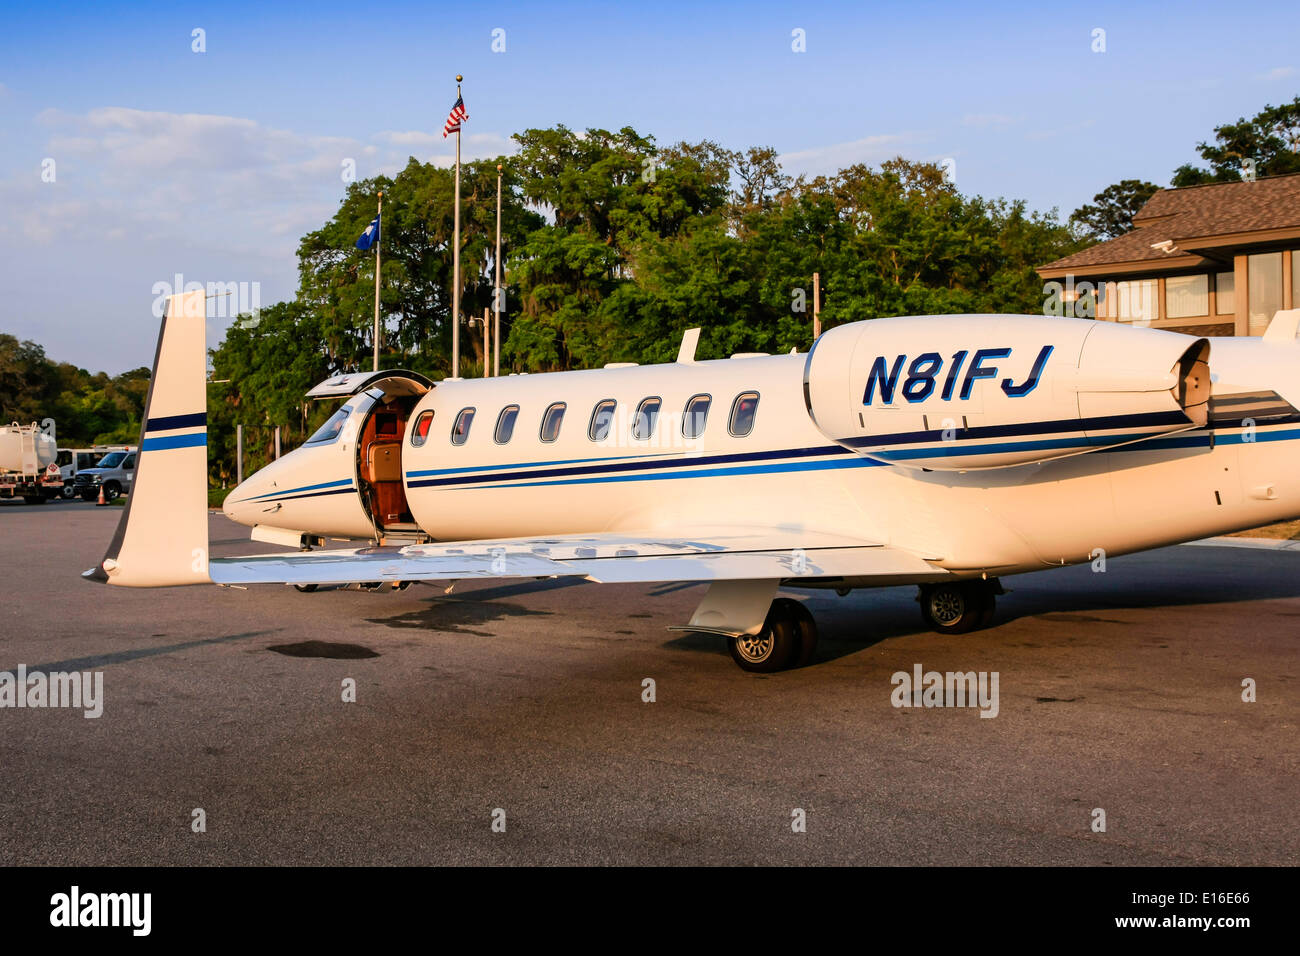 Private Luxury Jet aircraft at Hilton Head Airport SC - Stock Image